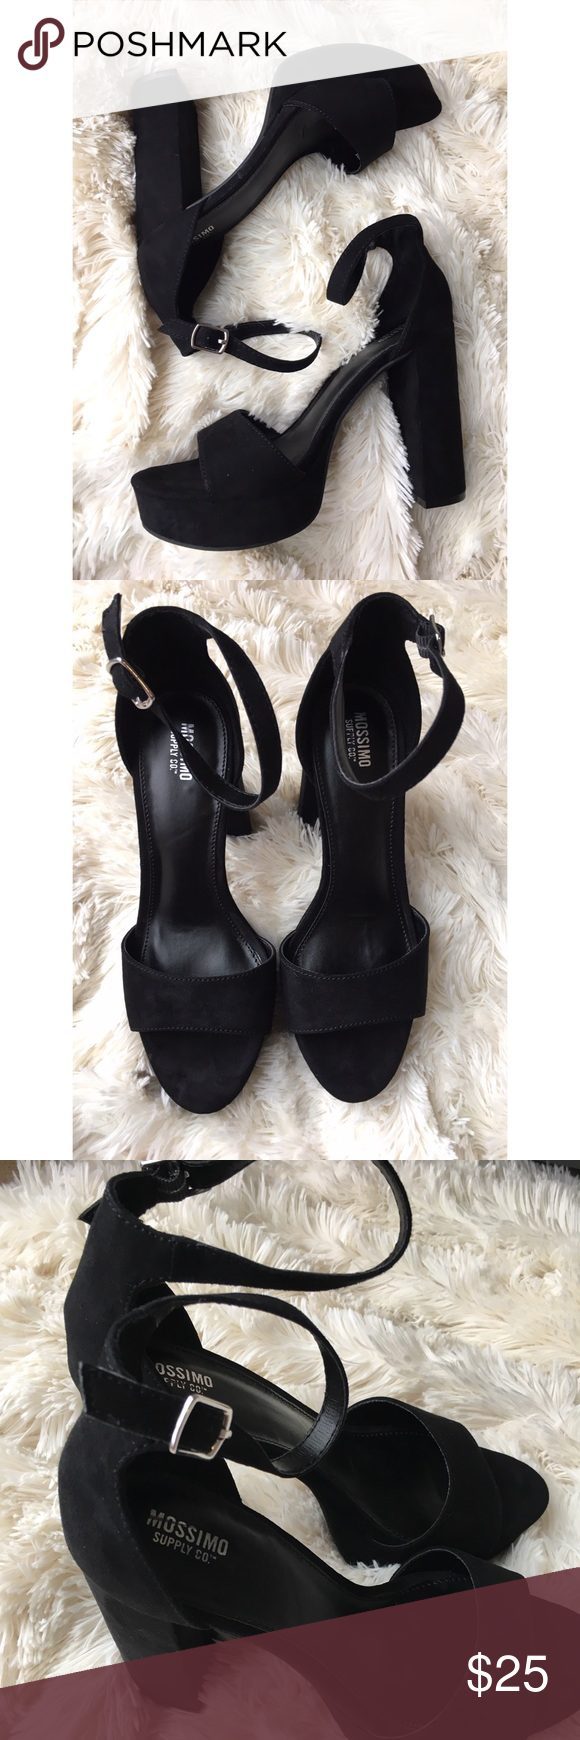 659ec05e20 Mossimo Fabiola Black Platform Heels NWOT Get into the groove in these  fabulous '70s-inspired Mossimo Supply Co. Women's Fabiola Platform Heels.